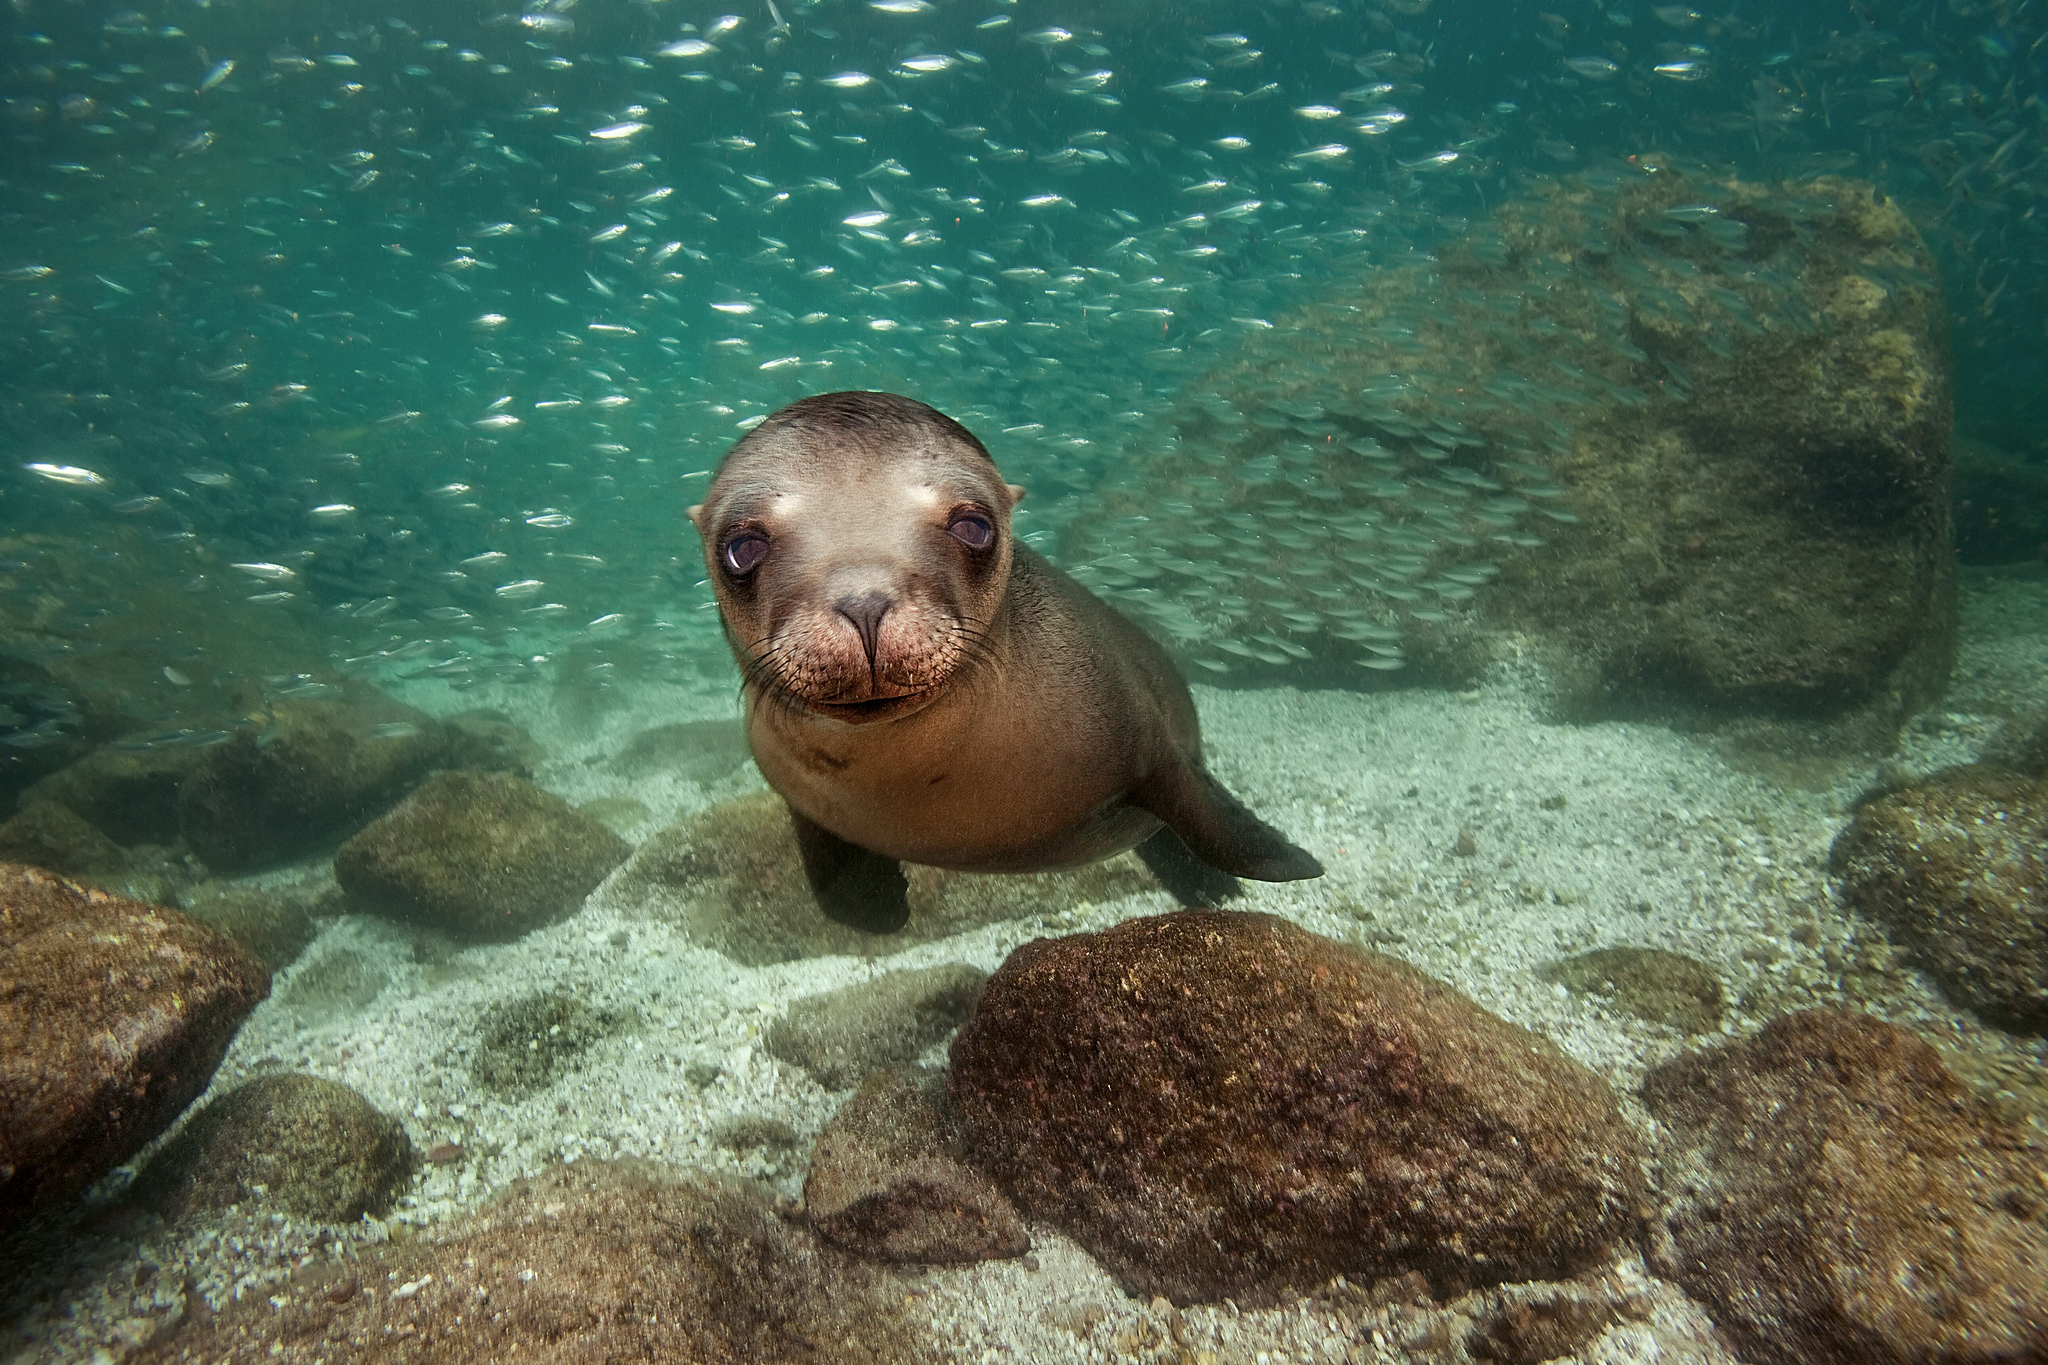 Cute Iphone 7 Plus Wallpaper Sea Lion Full Hd Wallpaper And Background Image